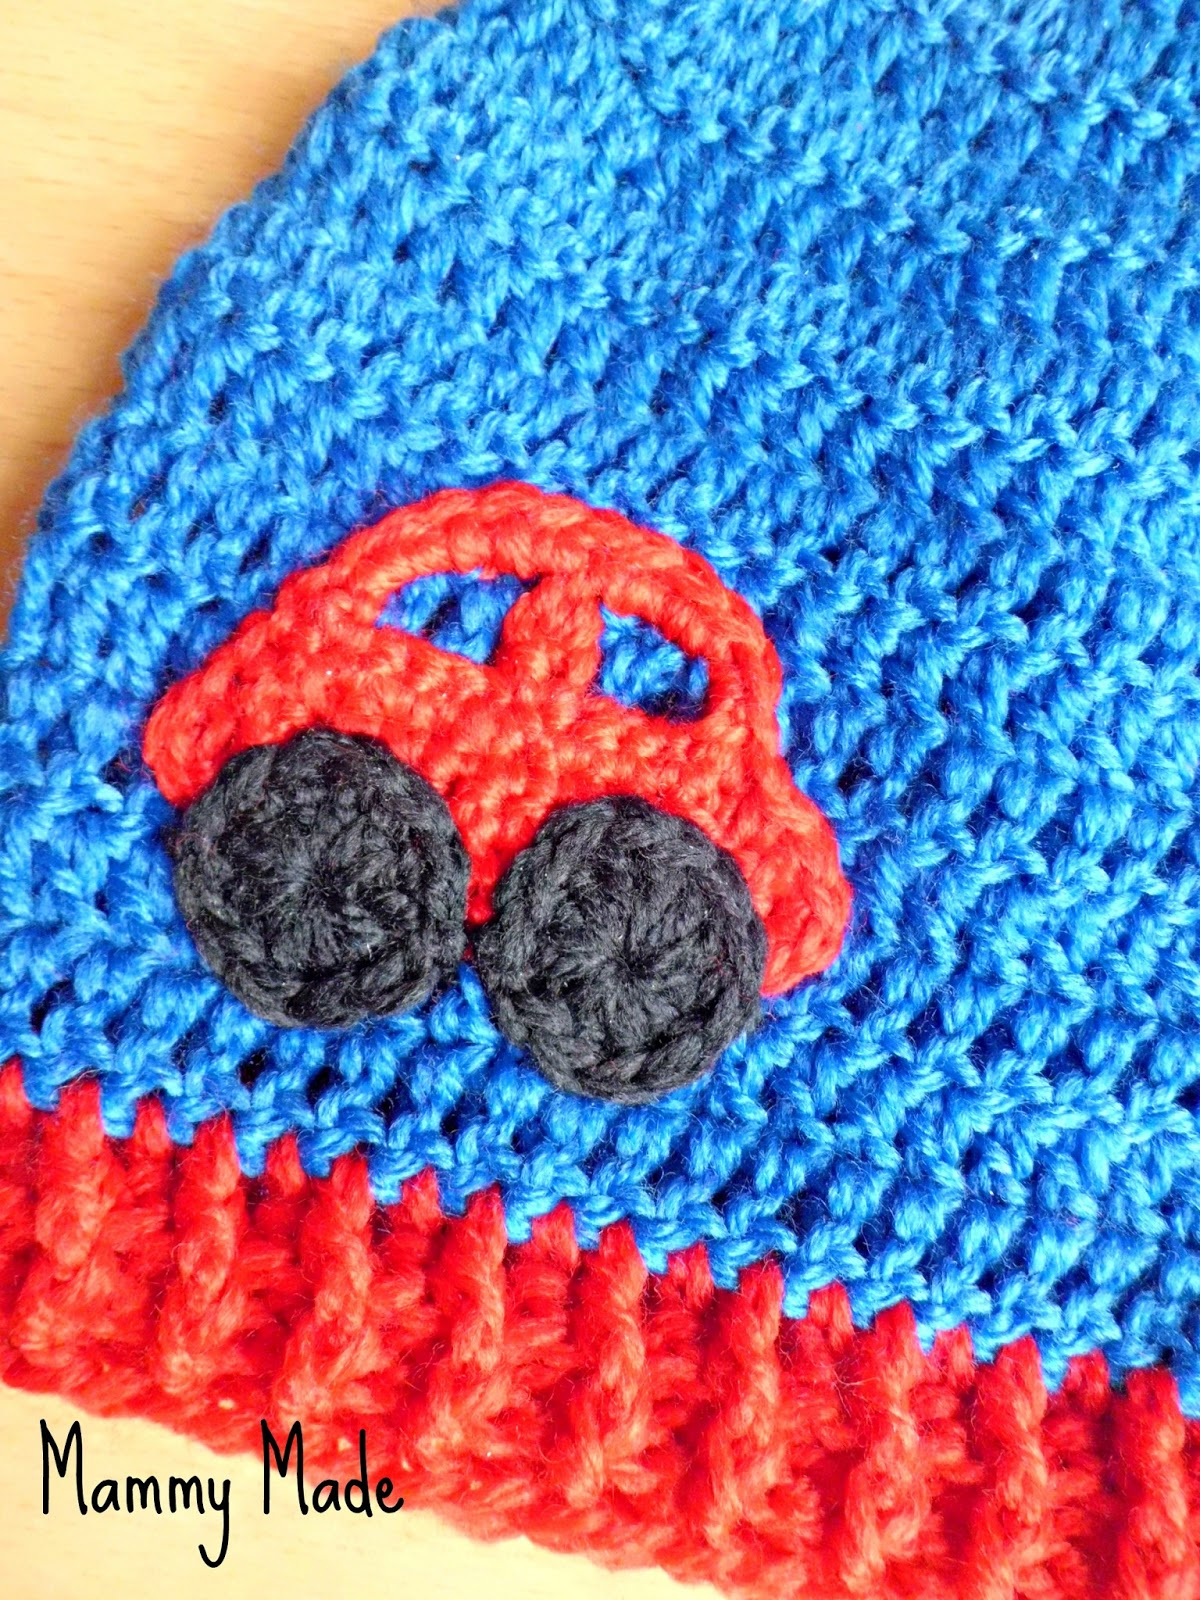 Mammy Made: Crochet car appliqué